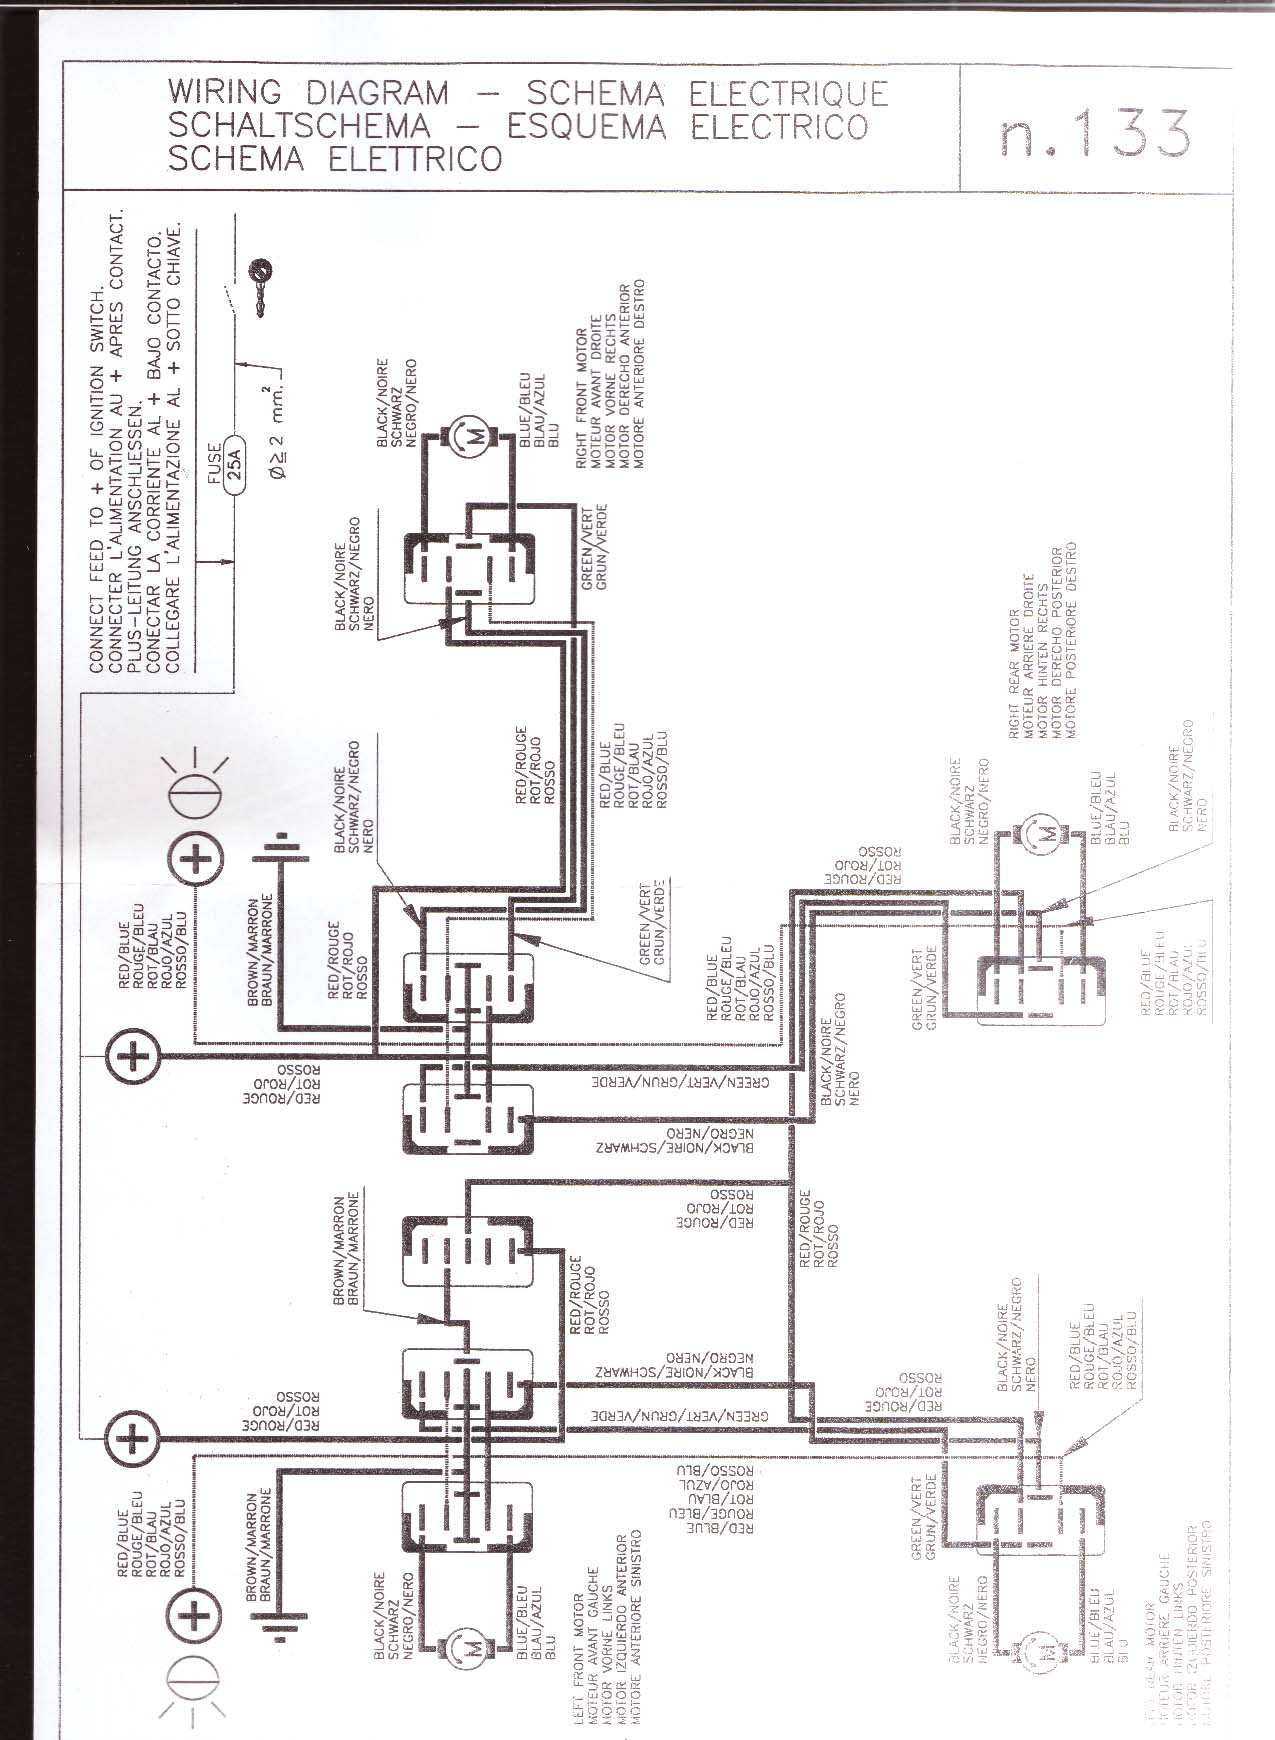 window wiring diagram 2003 eclipse spyder  window  free